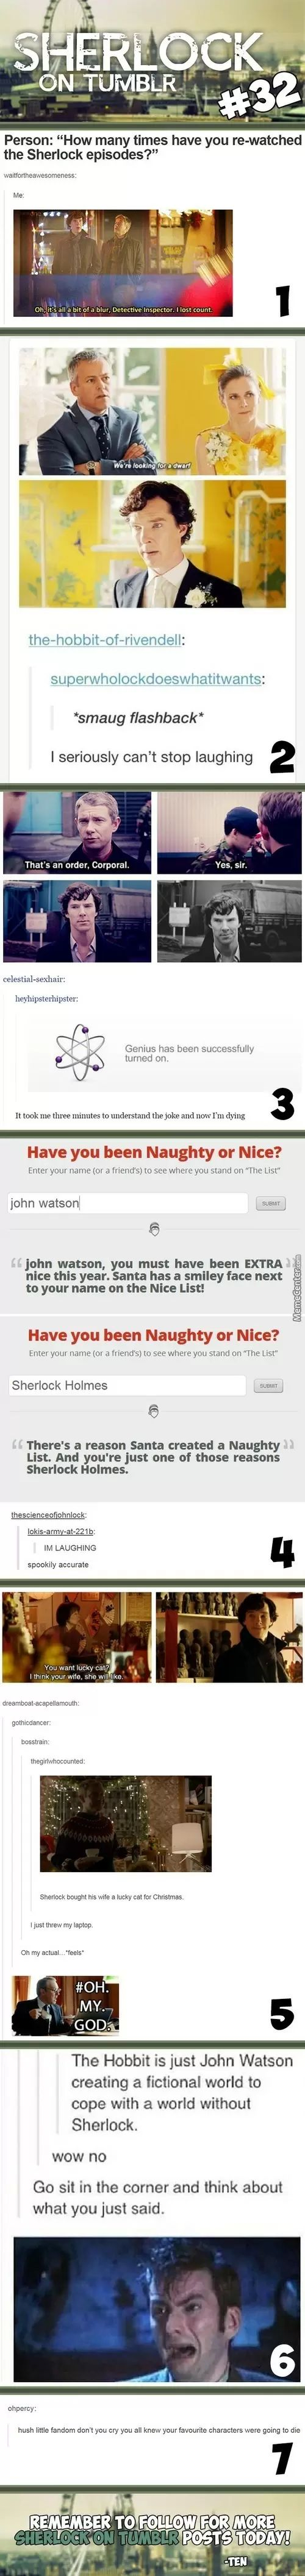 Sherlock On Tumblr #32